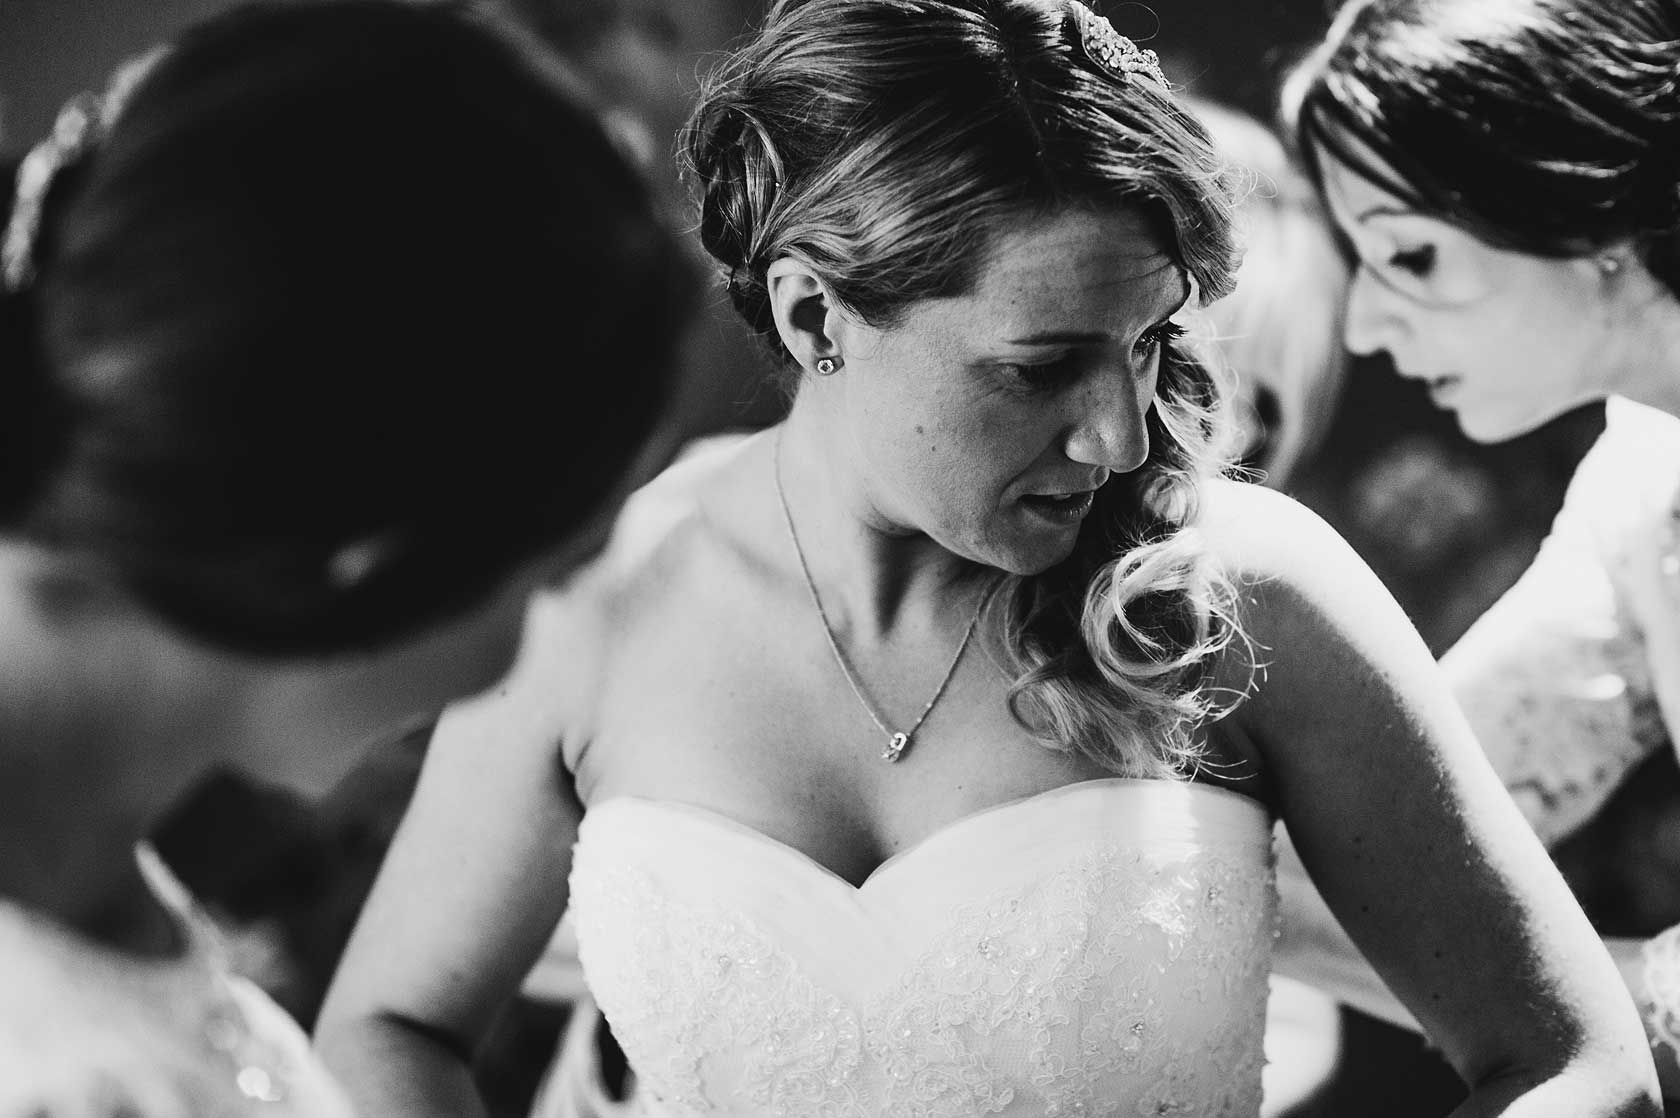 Reportage Wedding Photography at The Swan Hotel